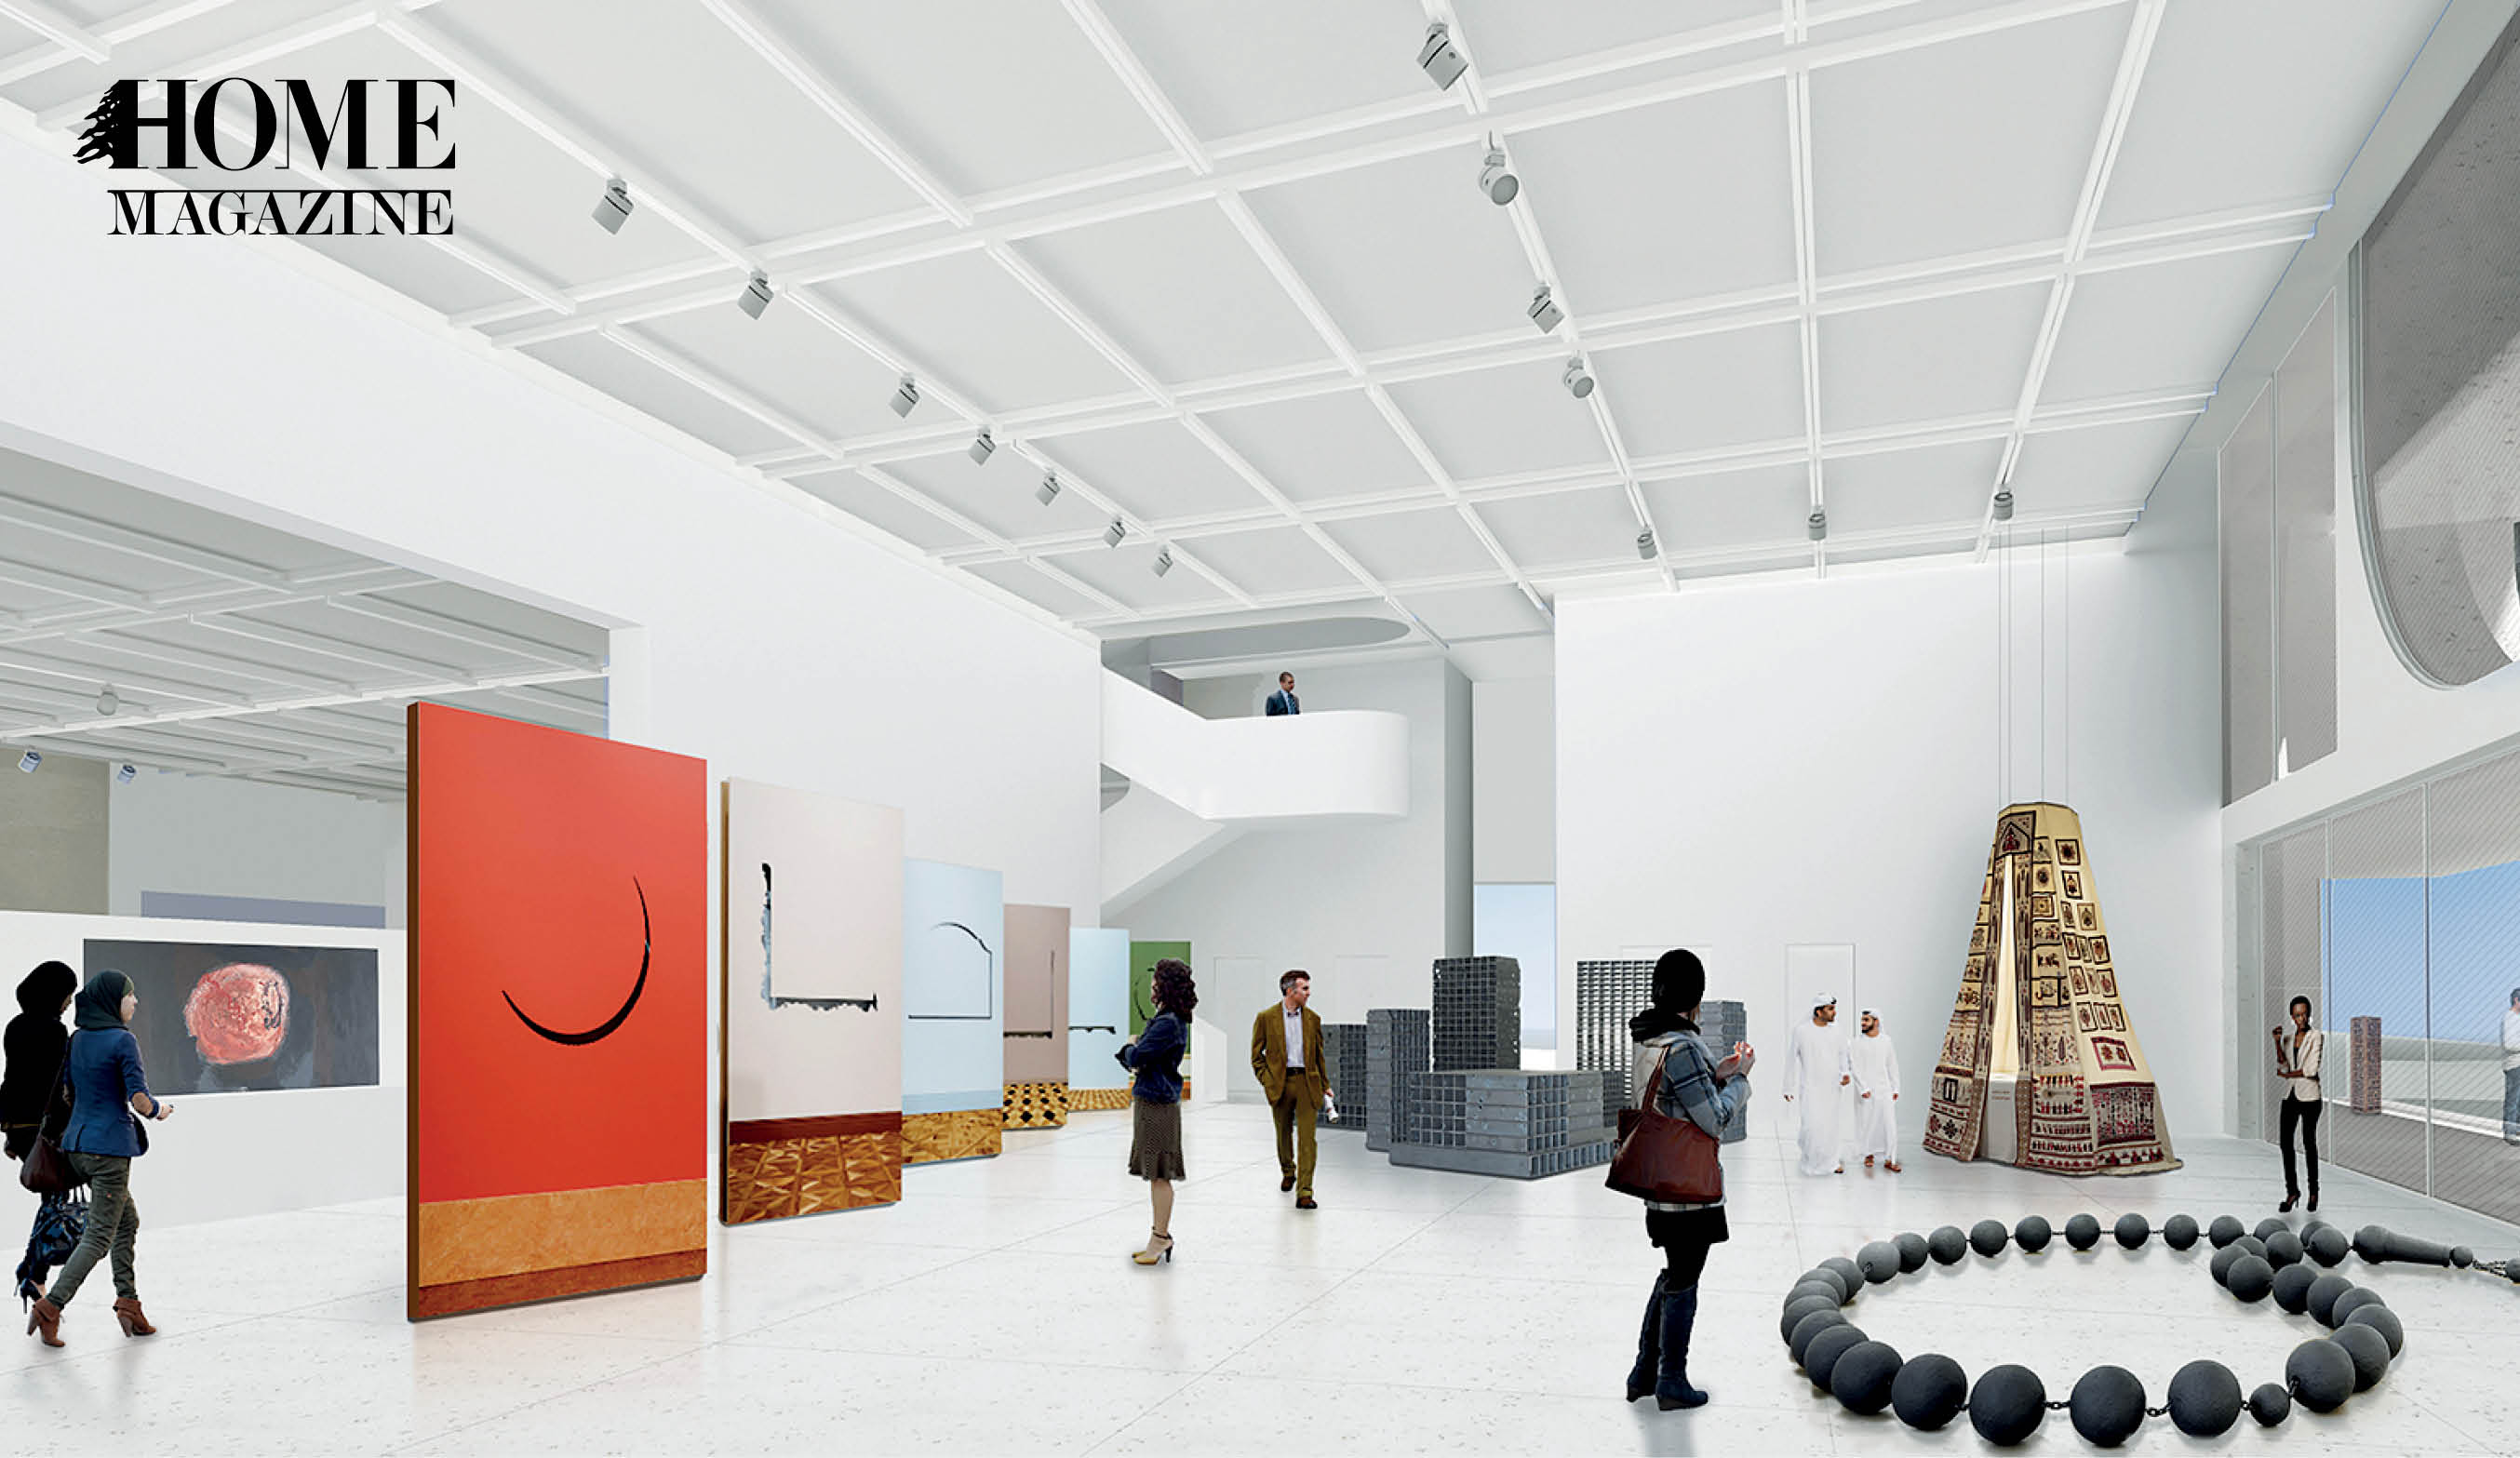 Interior white museum with people and drawings